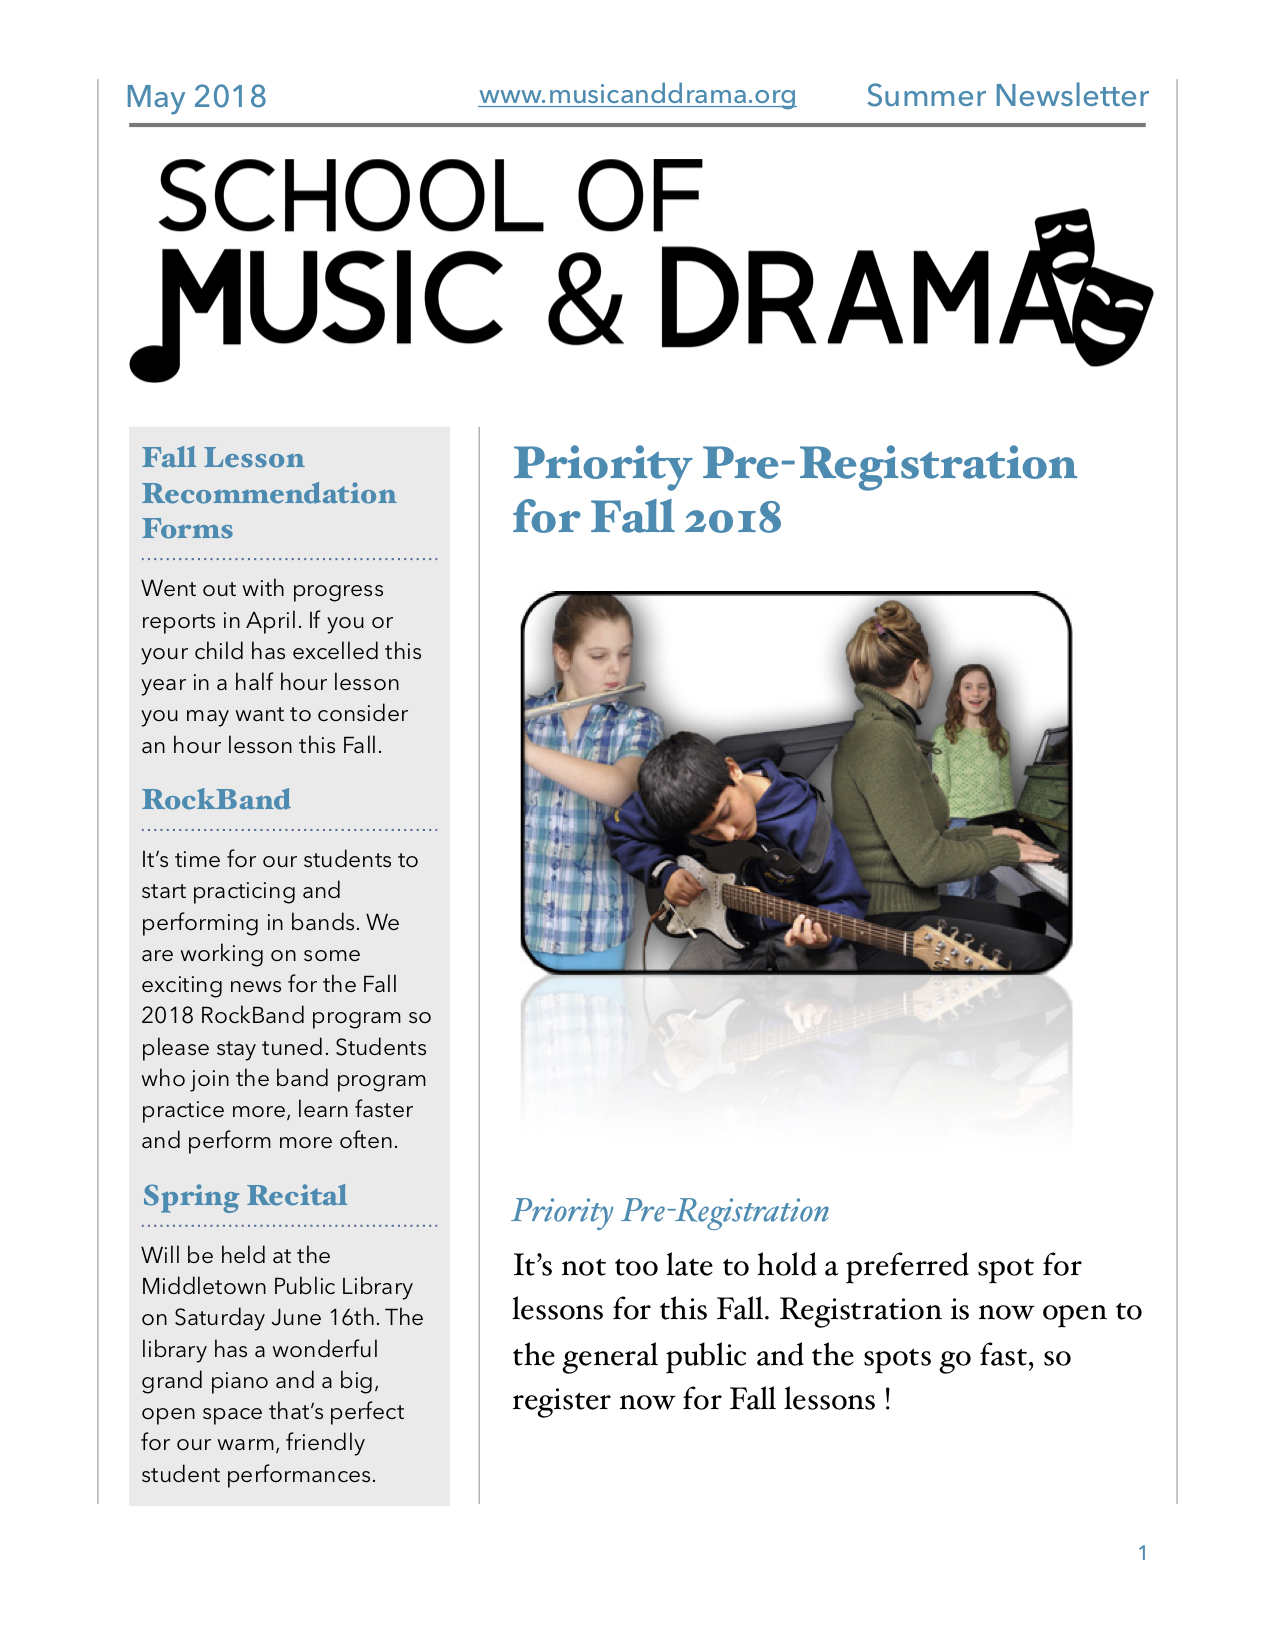 SMD Summer Newsletter